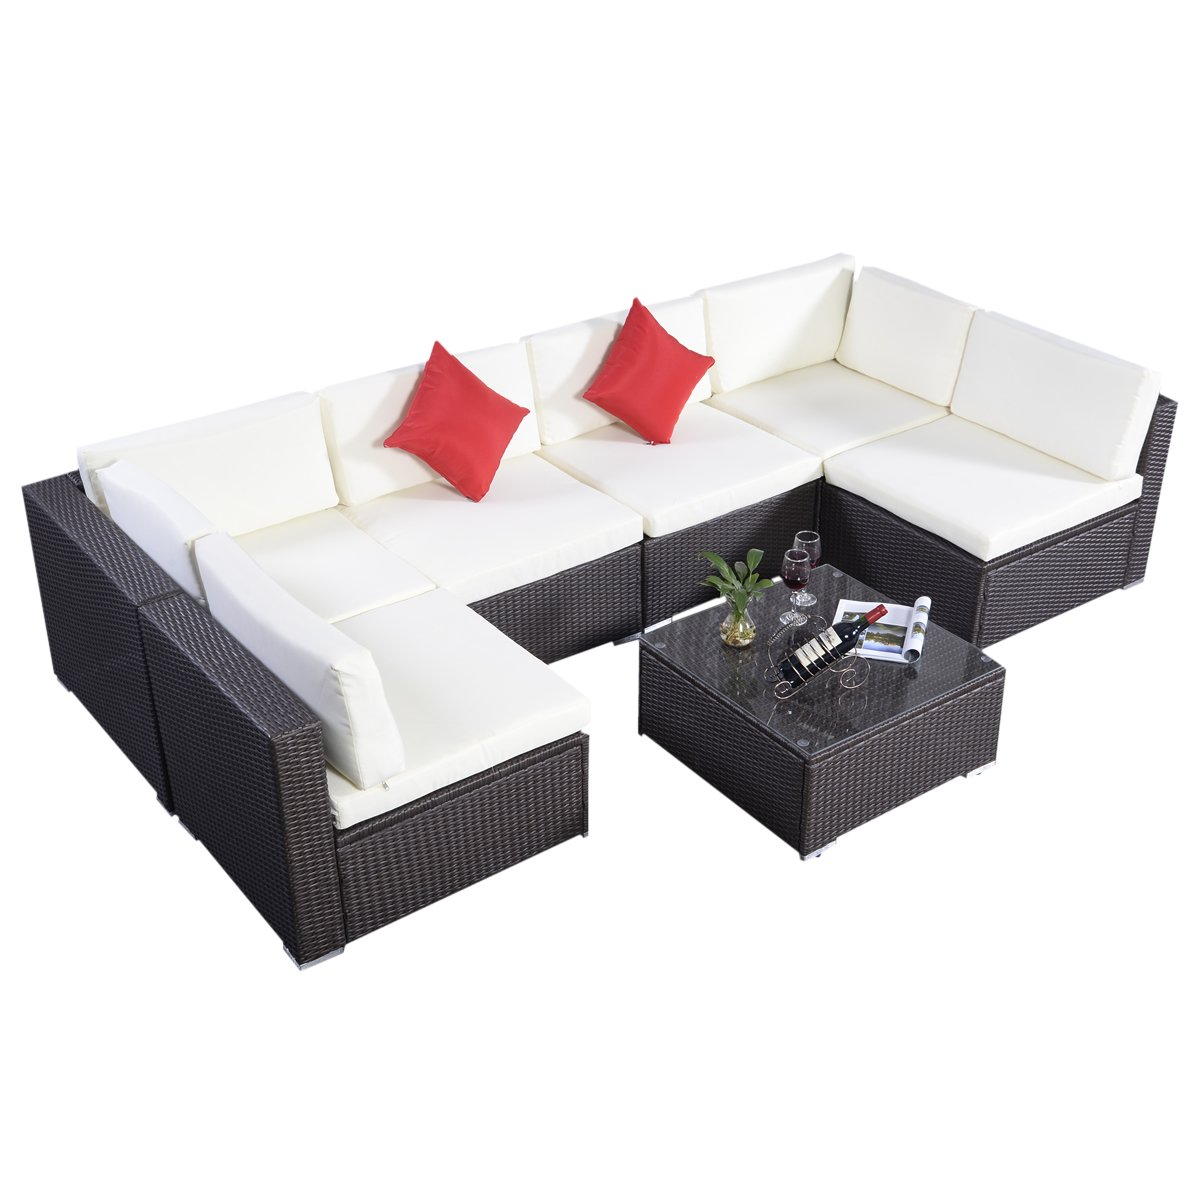 poly rattan lounge gartenm bel sitzgarnitur lounge set. Black Bedroom Furniture Sets. Home Design Ideas